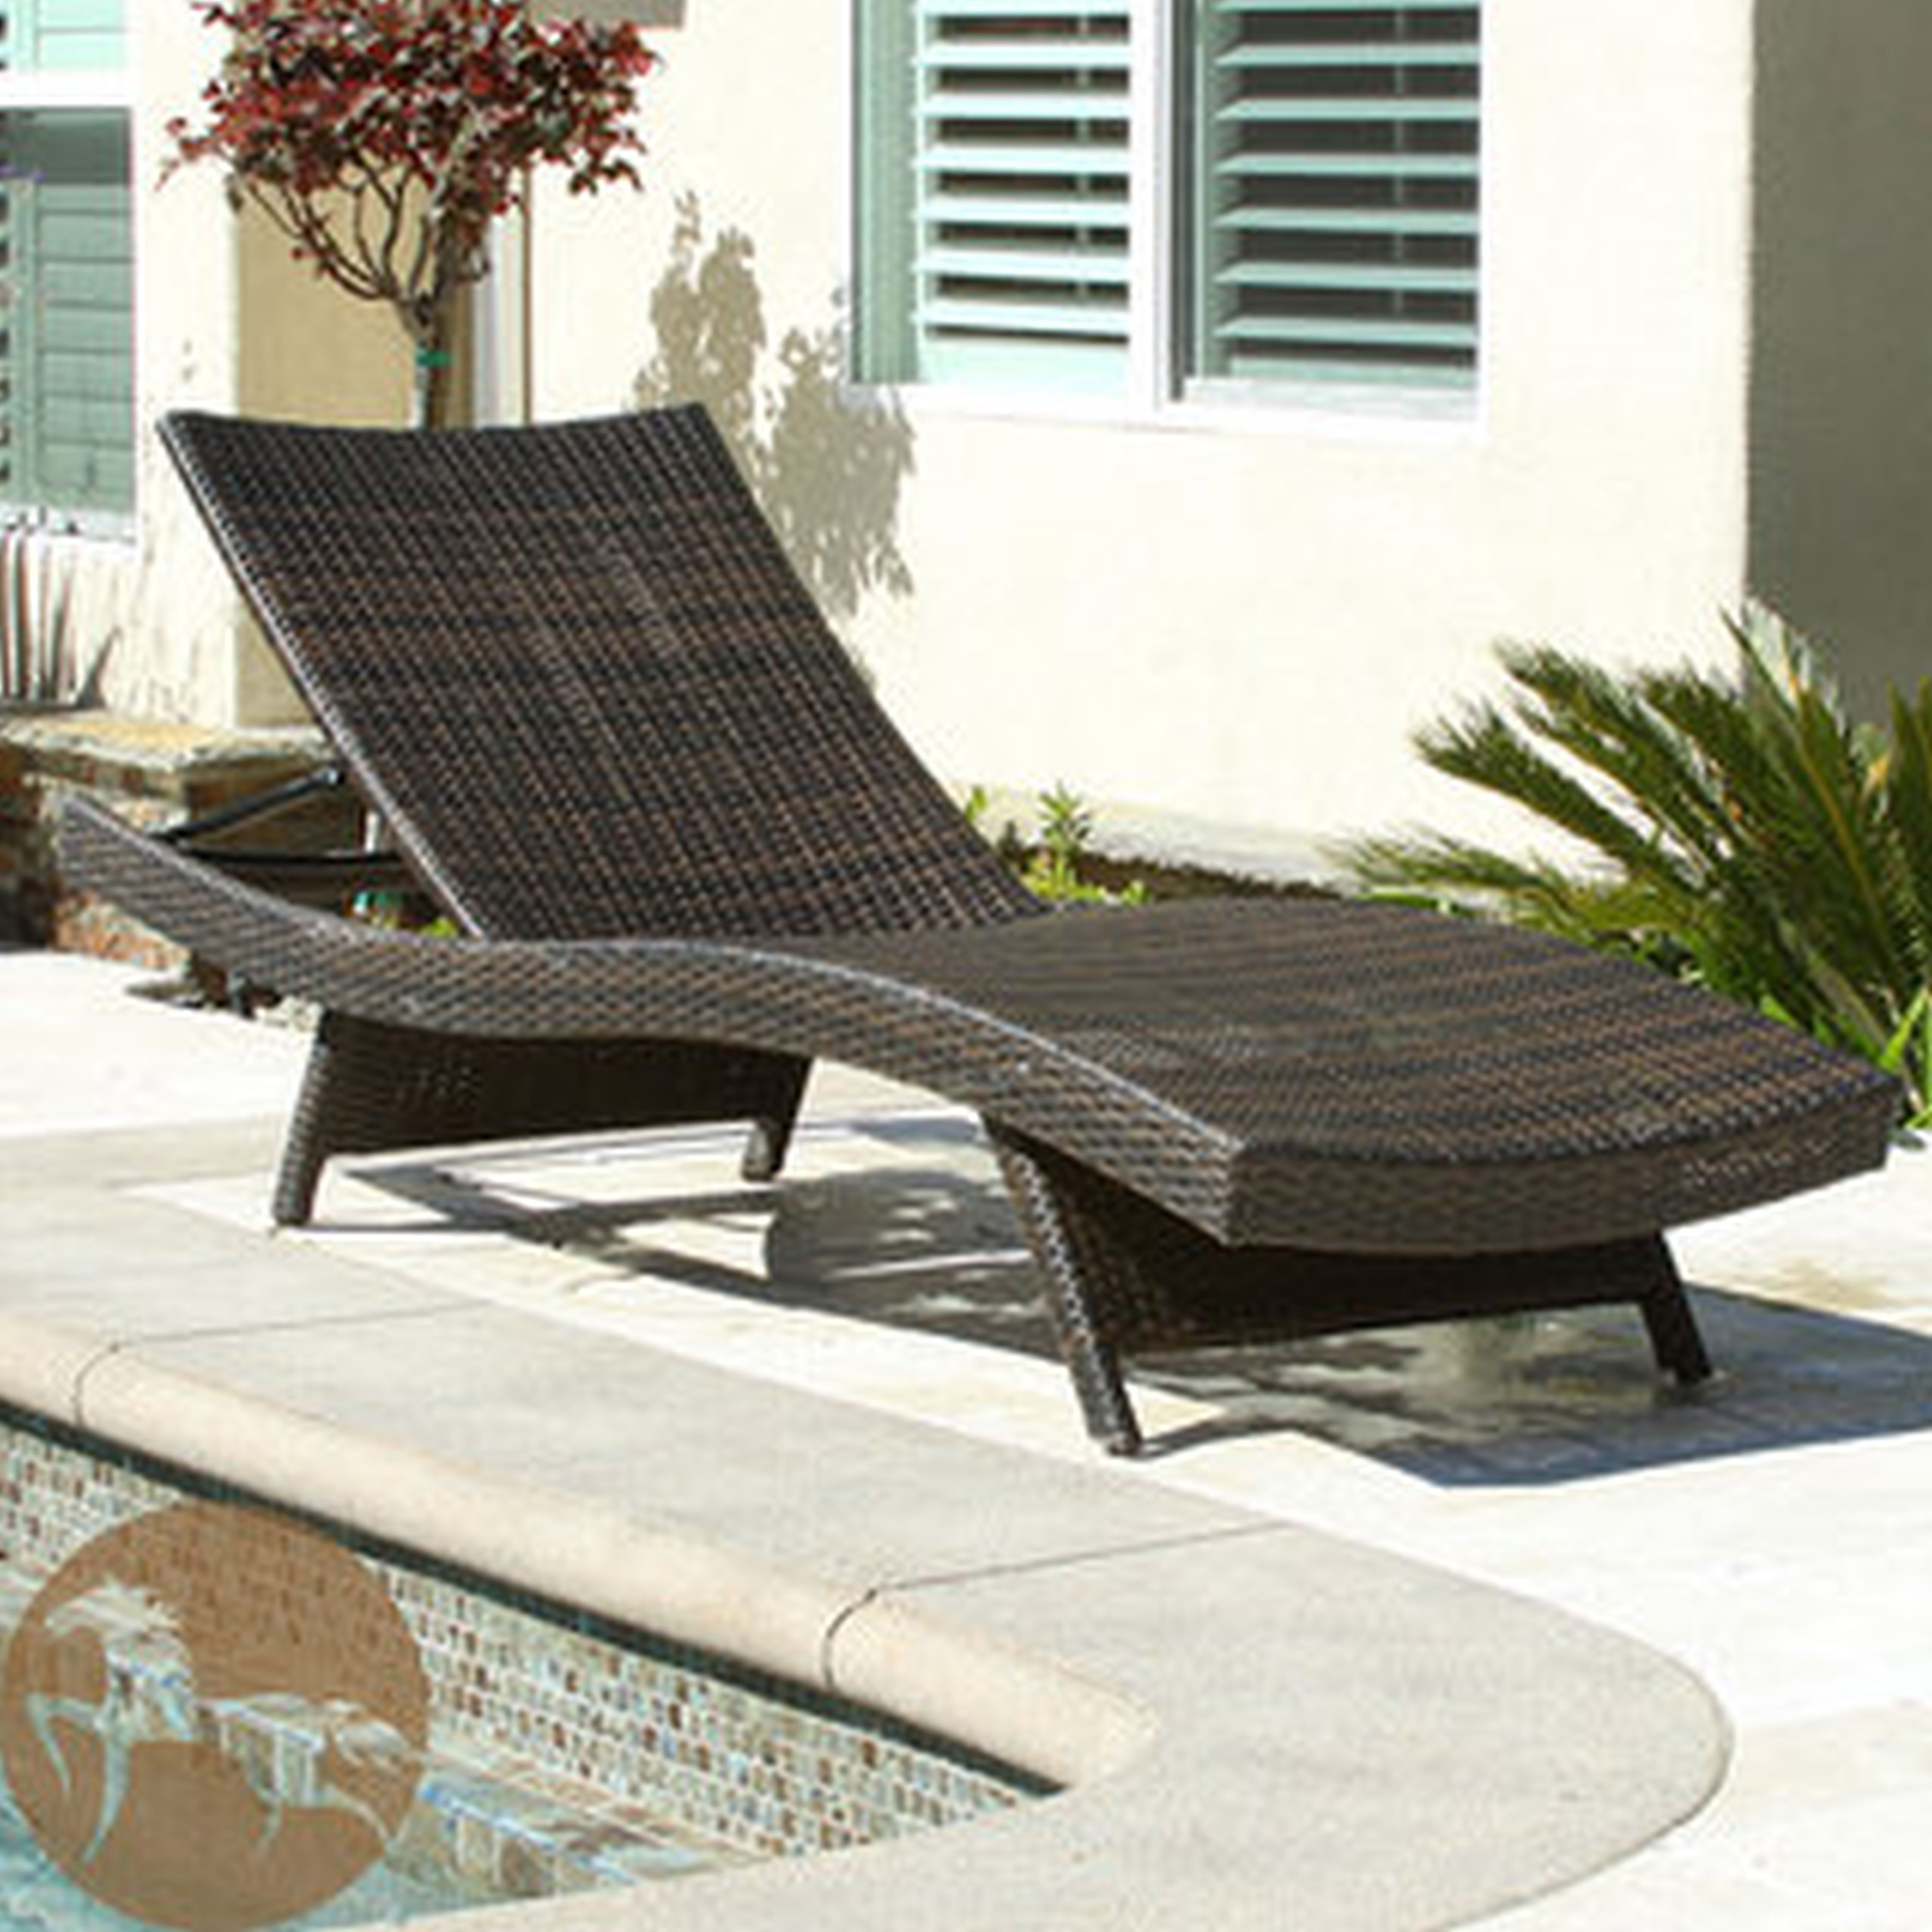 Outdoor : Patio Chaise Lounge Chairs Pool Lounge Chairs Chaise Inside Widely Used Outdoor Wicker Chaise Lounges (View 6 of 15)